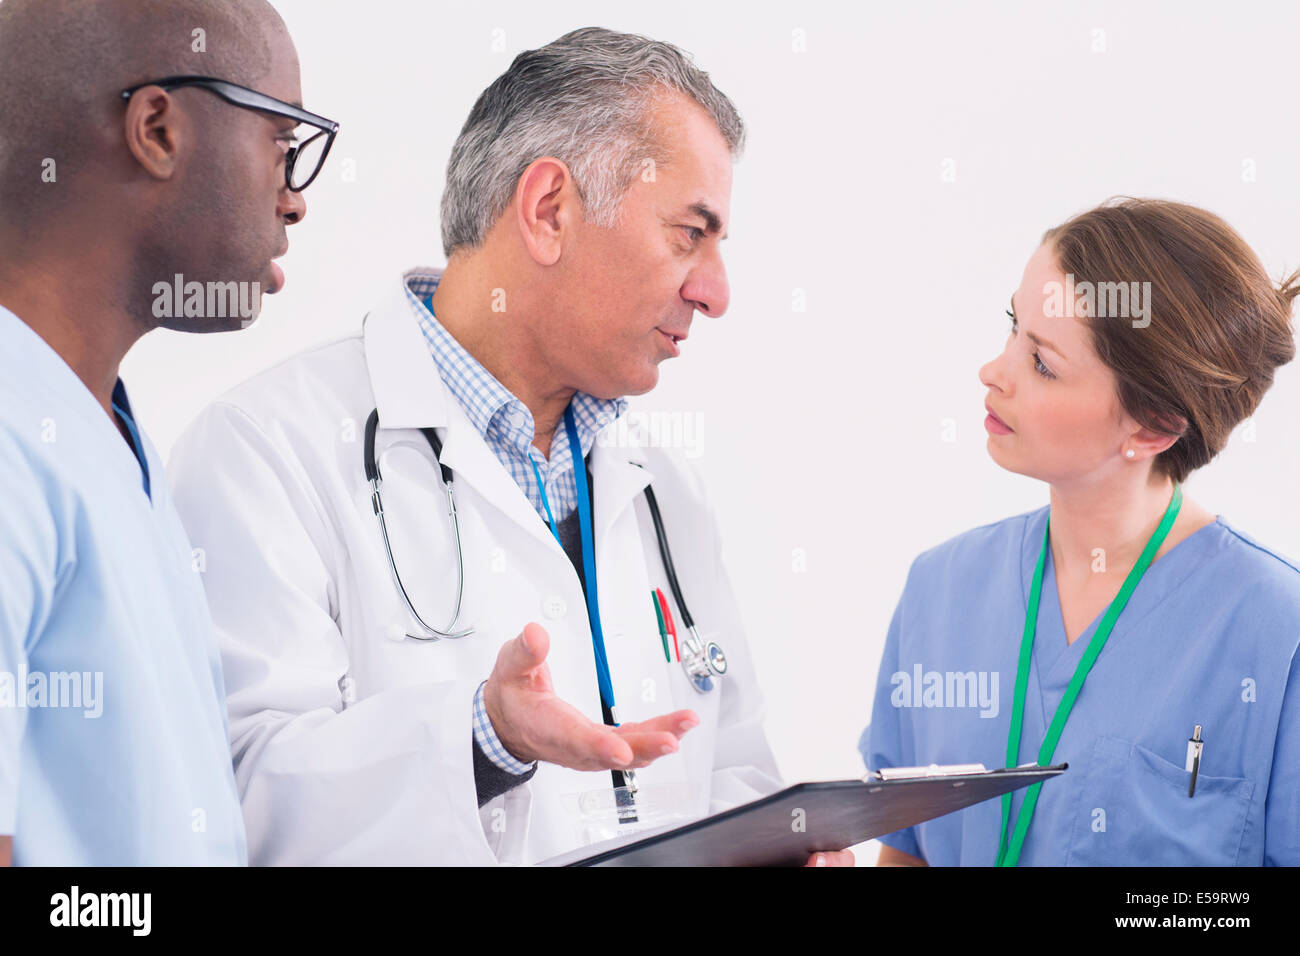 Doctor and nurses talking - Stock Image